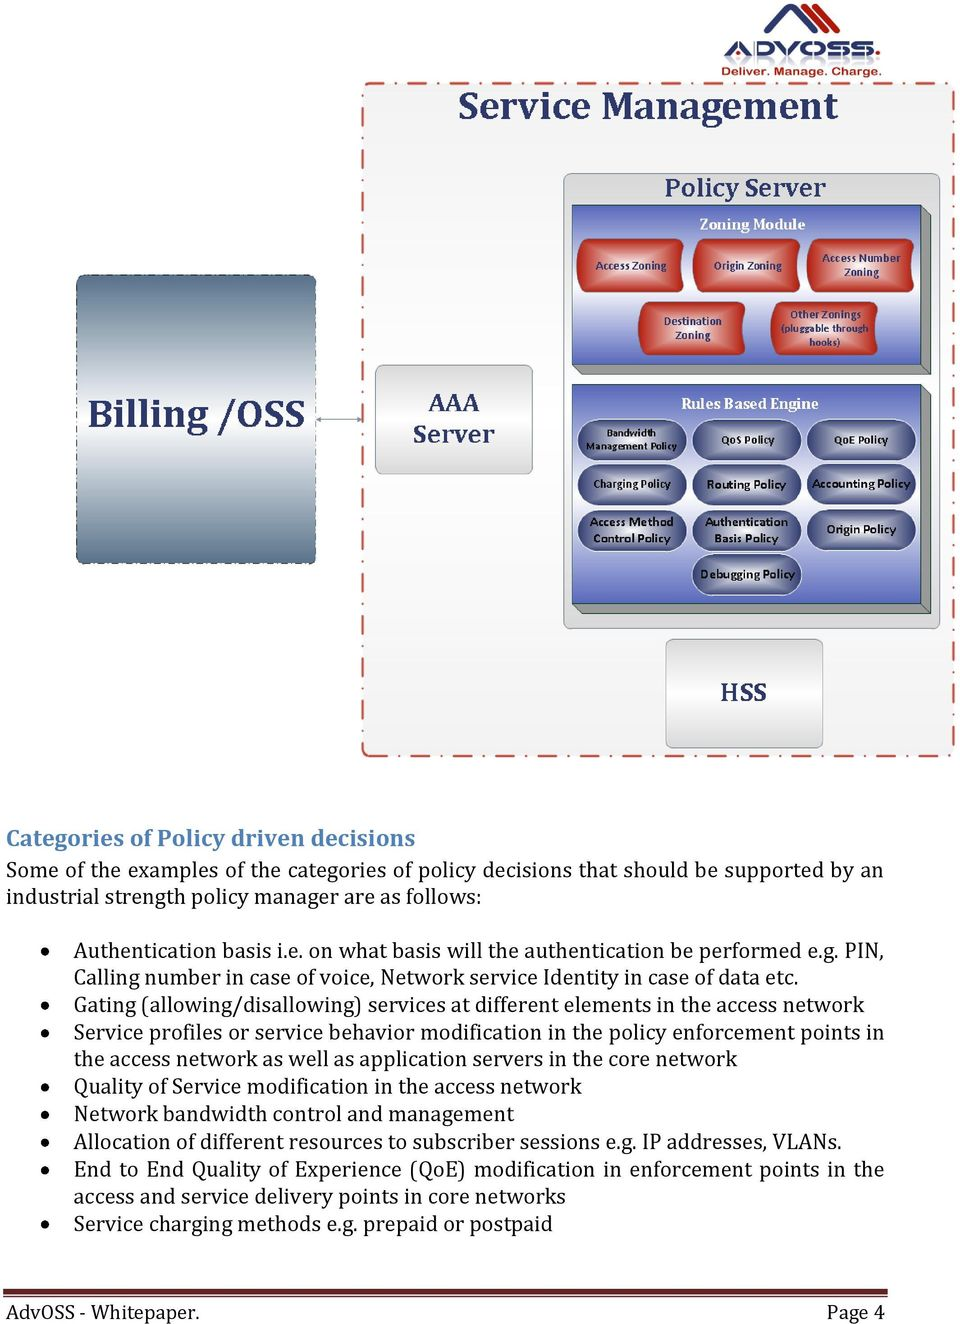 Gating (allowing/disallowing) services at different elements in the access network Service profiles or service behavior modification in the policy enforcement points in the access network as well as